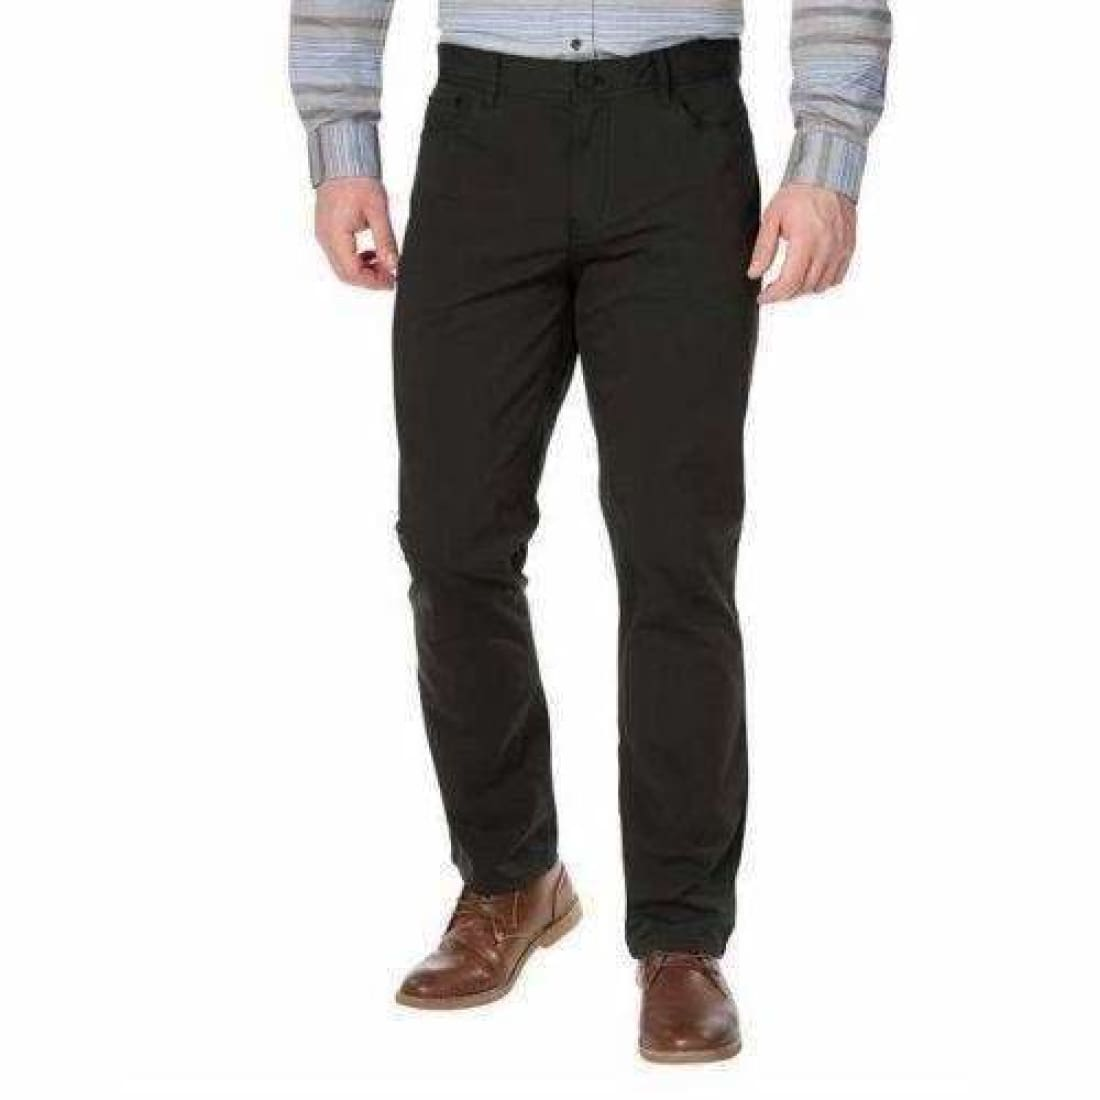 English Laundry Mens Arrogant Slimmer Leg Comfort Stretch Pant 32X30 / Graphite Pants